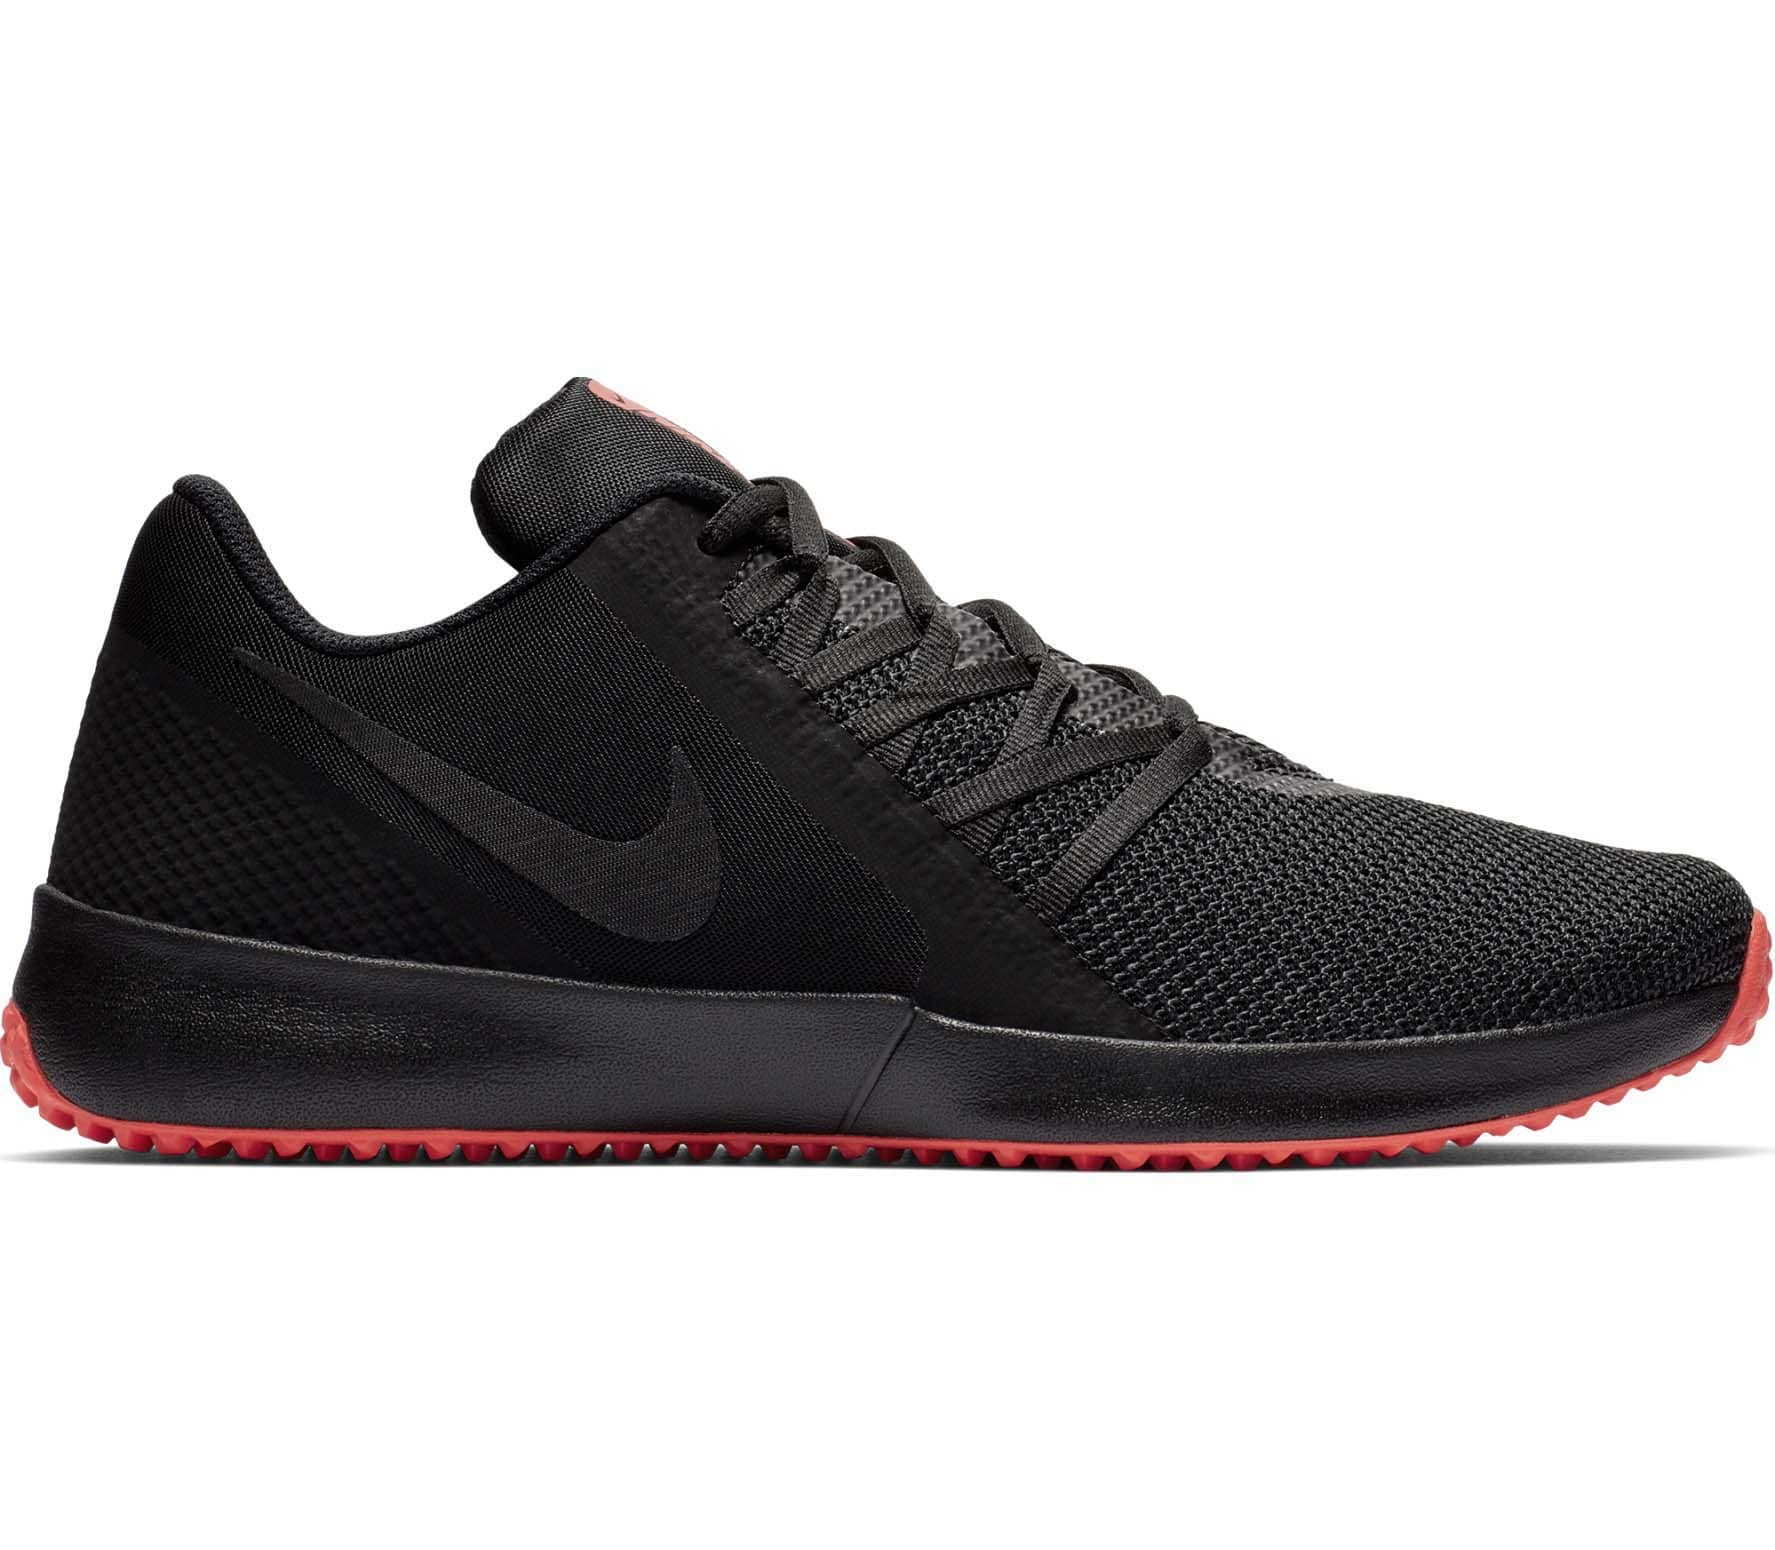 low priced ad1d5 f6e0a Nike - Varsity Compete Trainer men s training shoes (black orange)